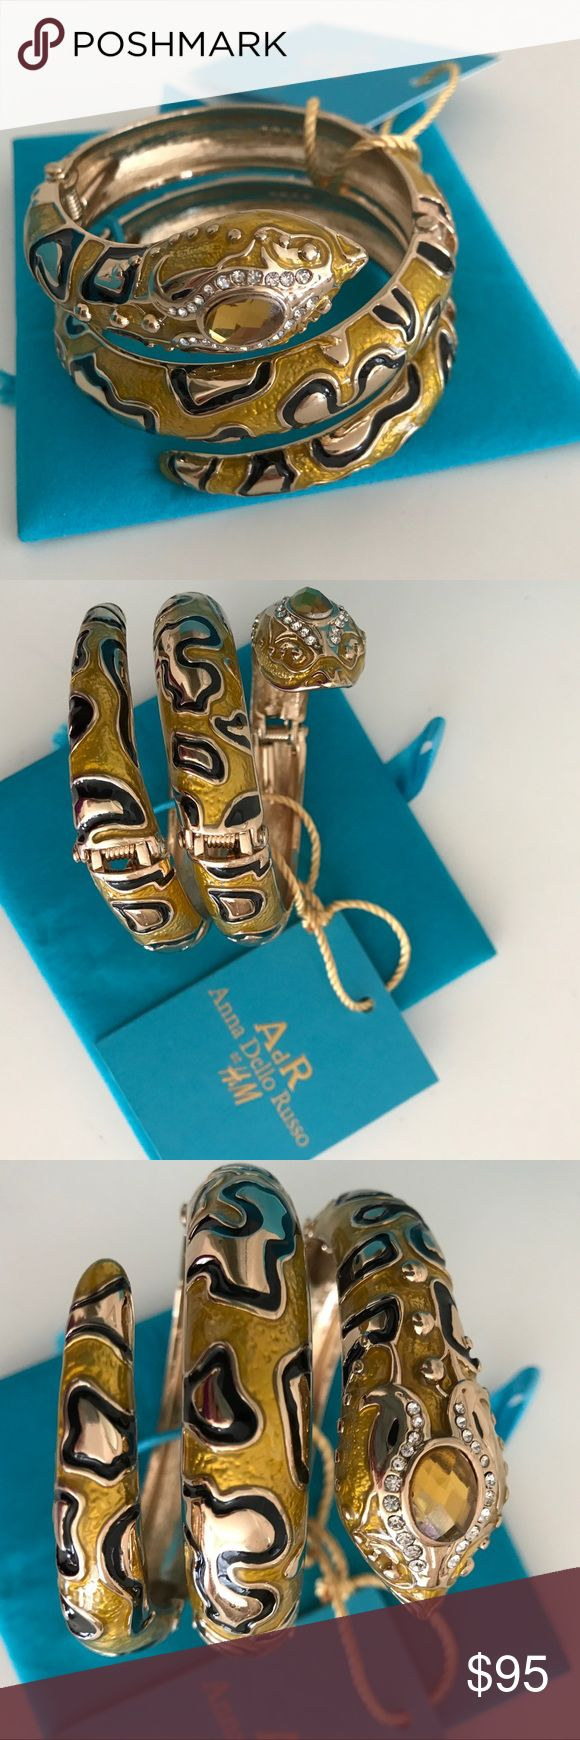 Anna Dello Russo Snake Bracelet Anna Dello Russo Snake Bracelet. Part of the limited edition collection for H&M. Rare!!! I camped out in the wee hours of the morning to snag part of this line. Brand New in Pretty Collector's Box. Anna Dello Russo Jewelry Bracelets